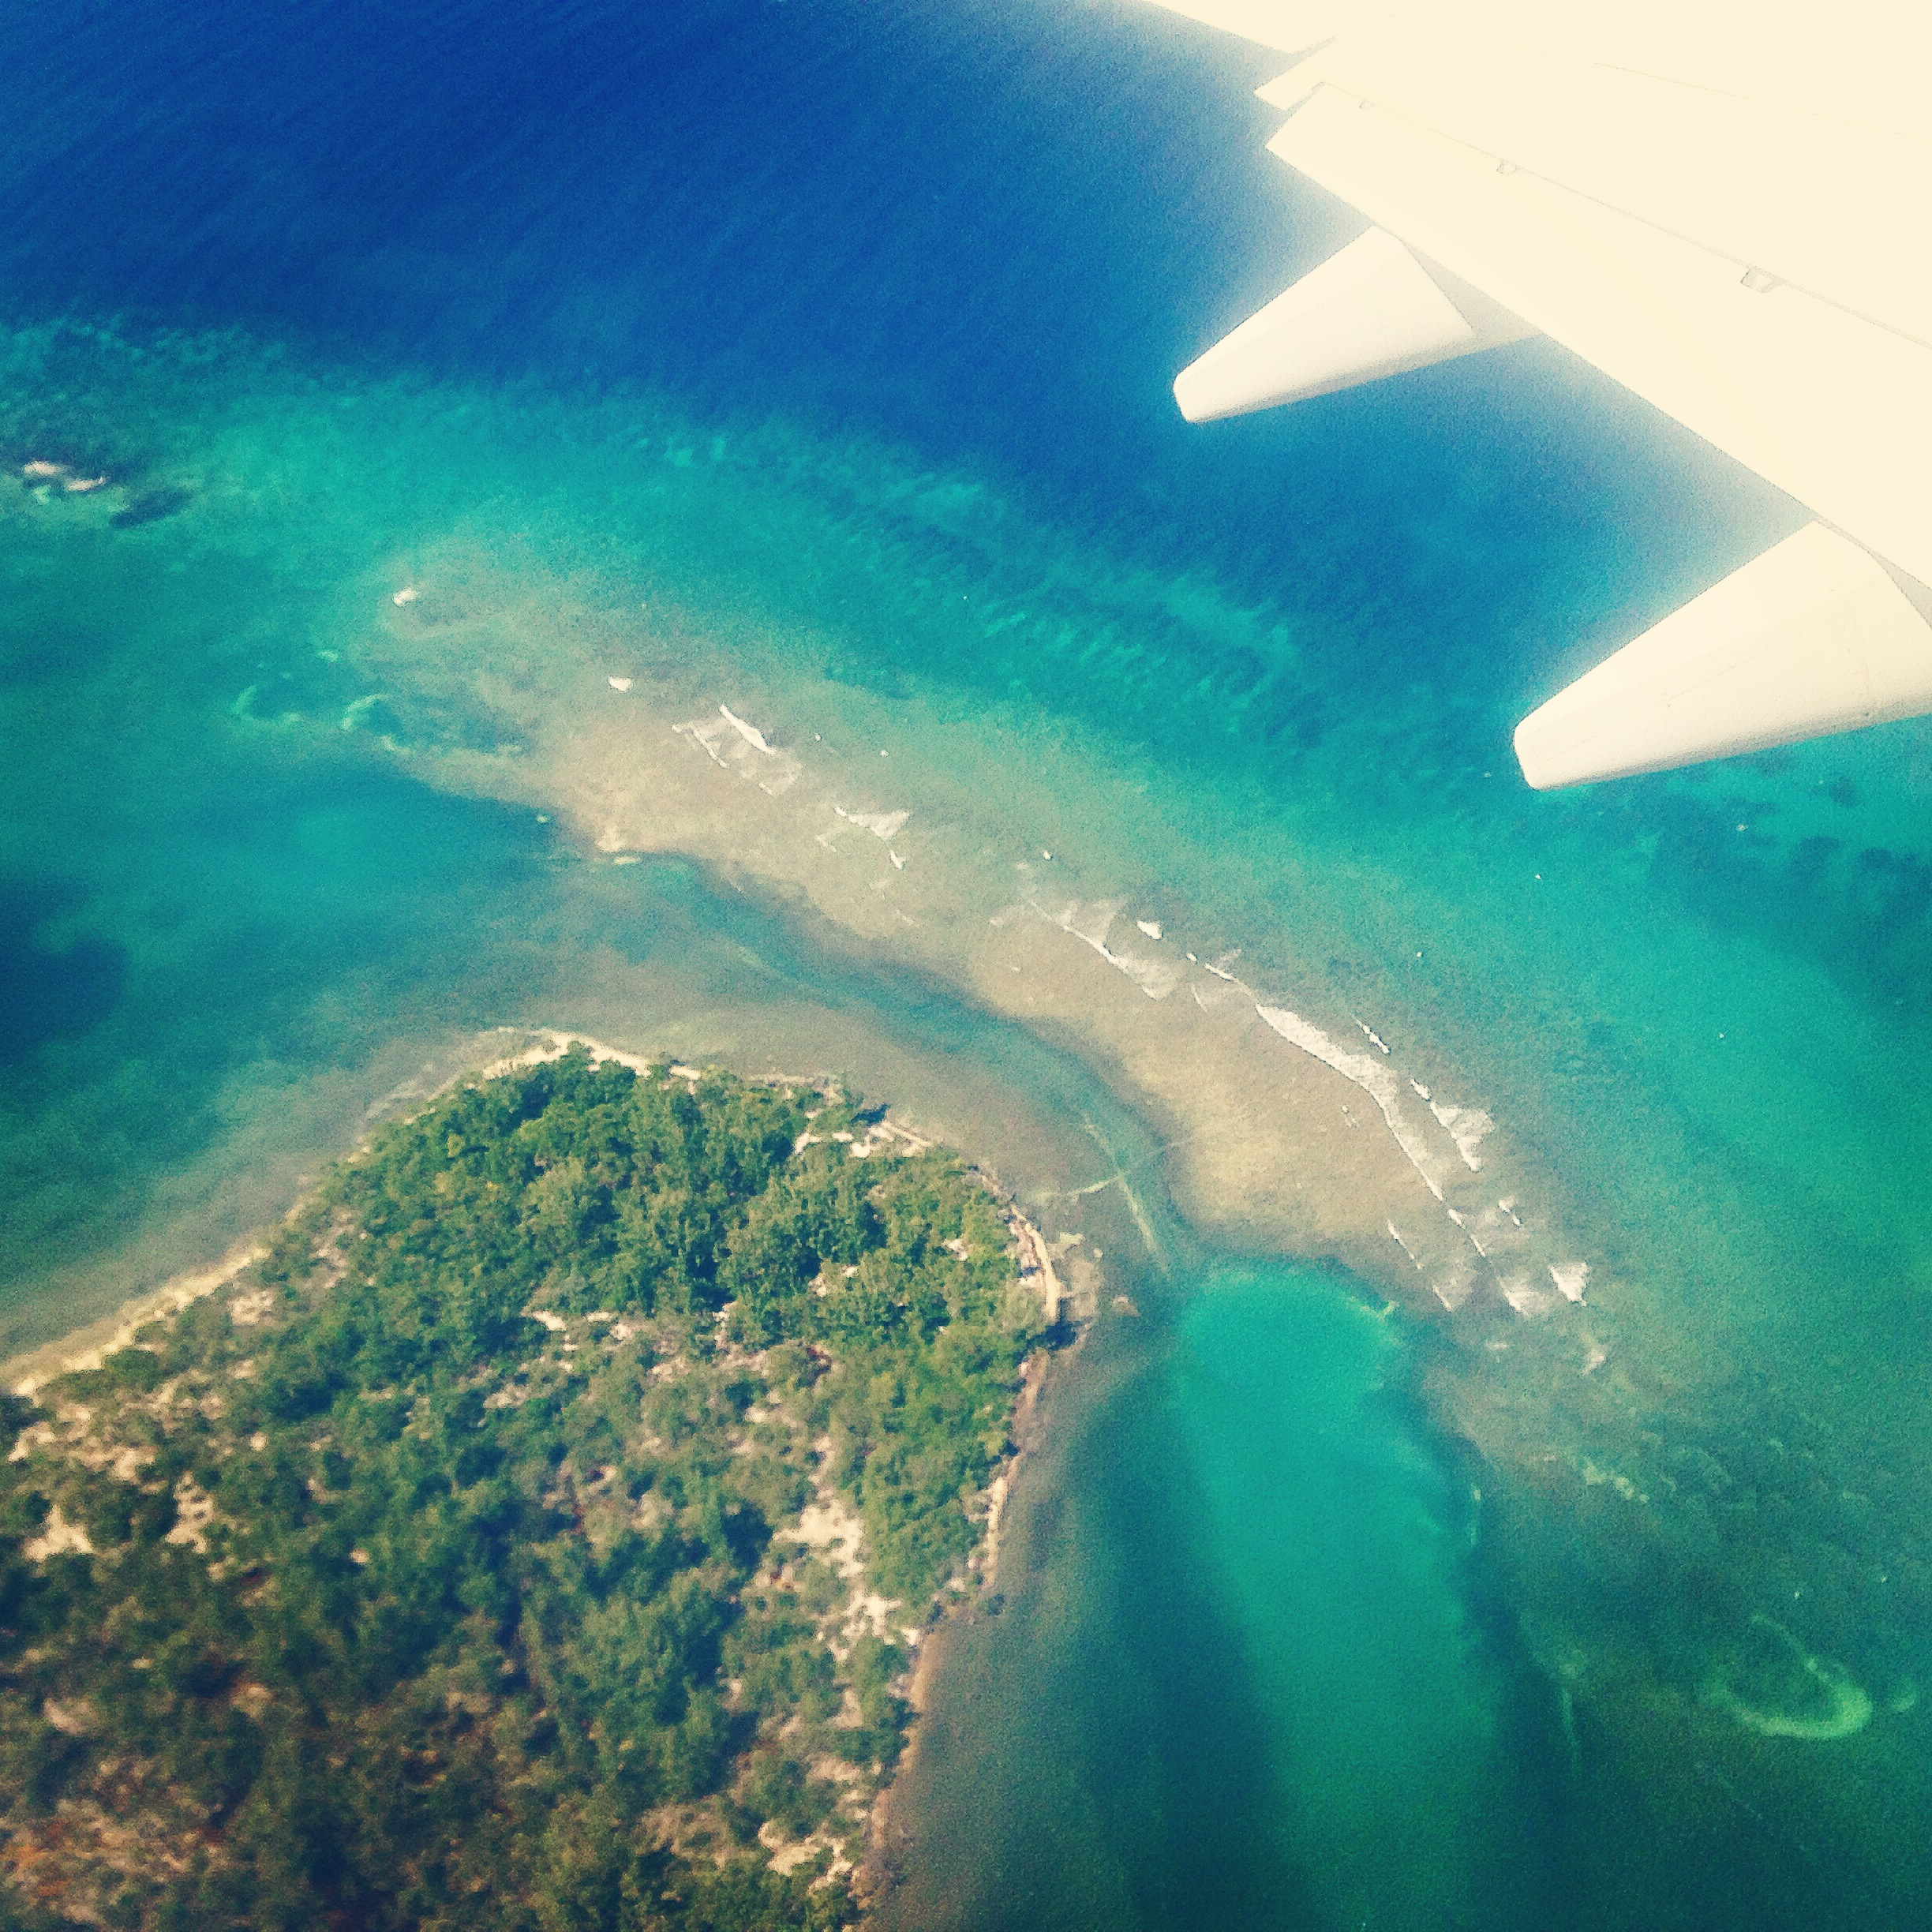 Birds eye view of Jamaica from airplane